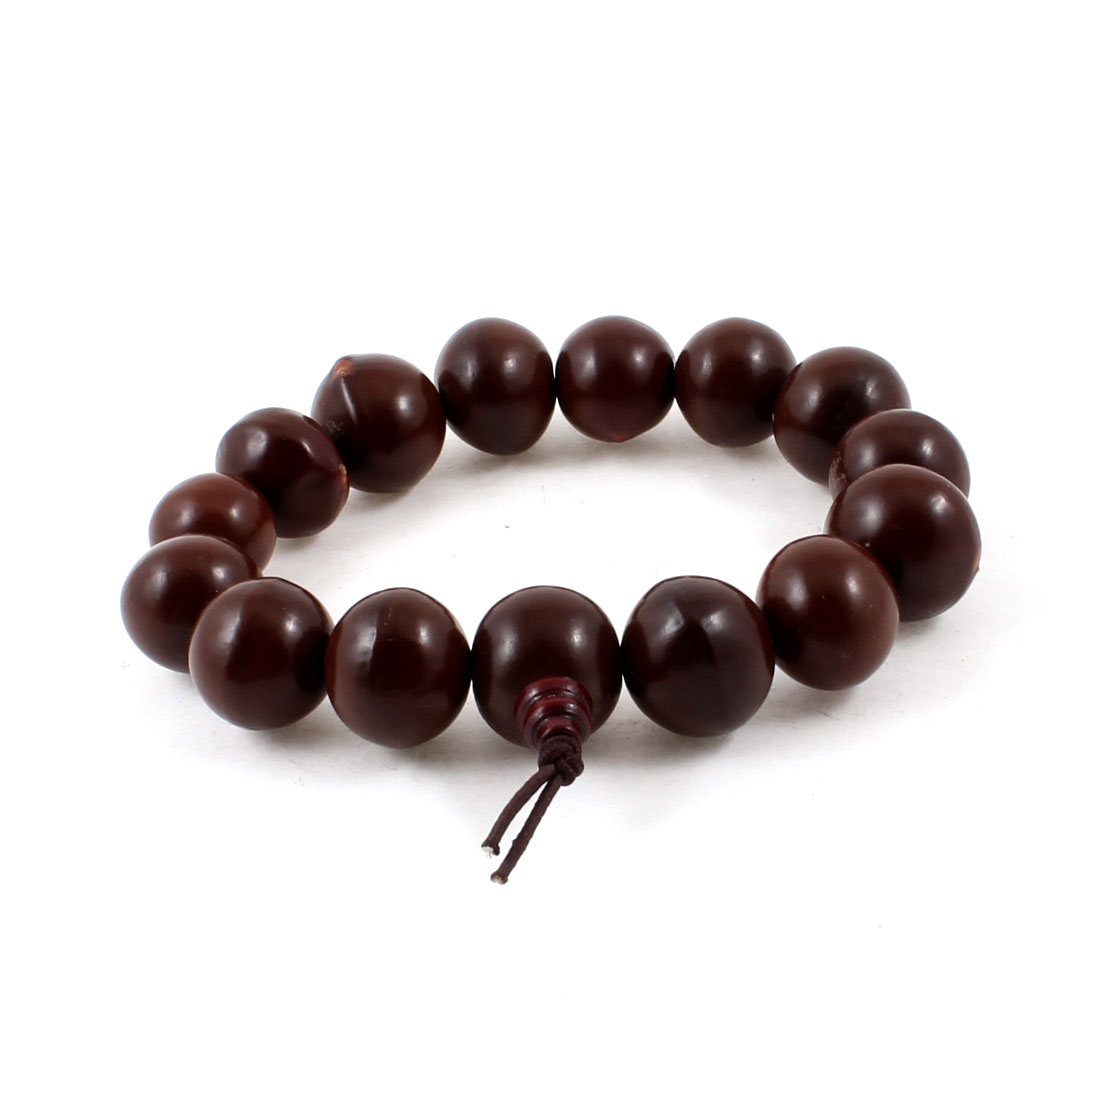 Unisex Buddhist Bodhi Seed Beaded Elastic Prayer Bracelet Brown